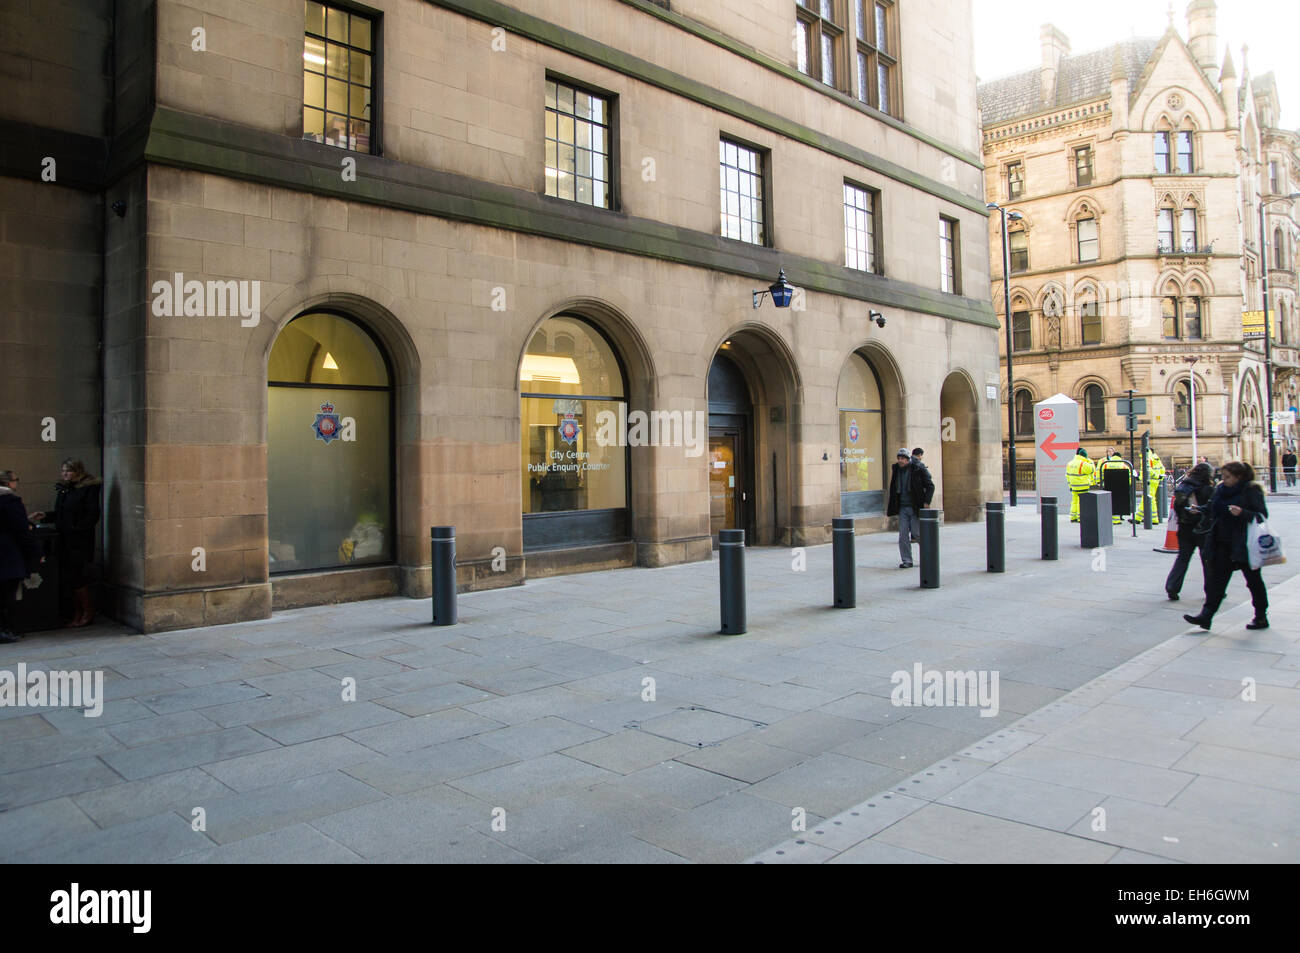 Manchester city centre police public enquiry counter - Stock Image